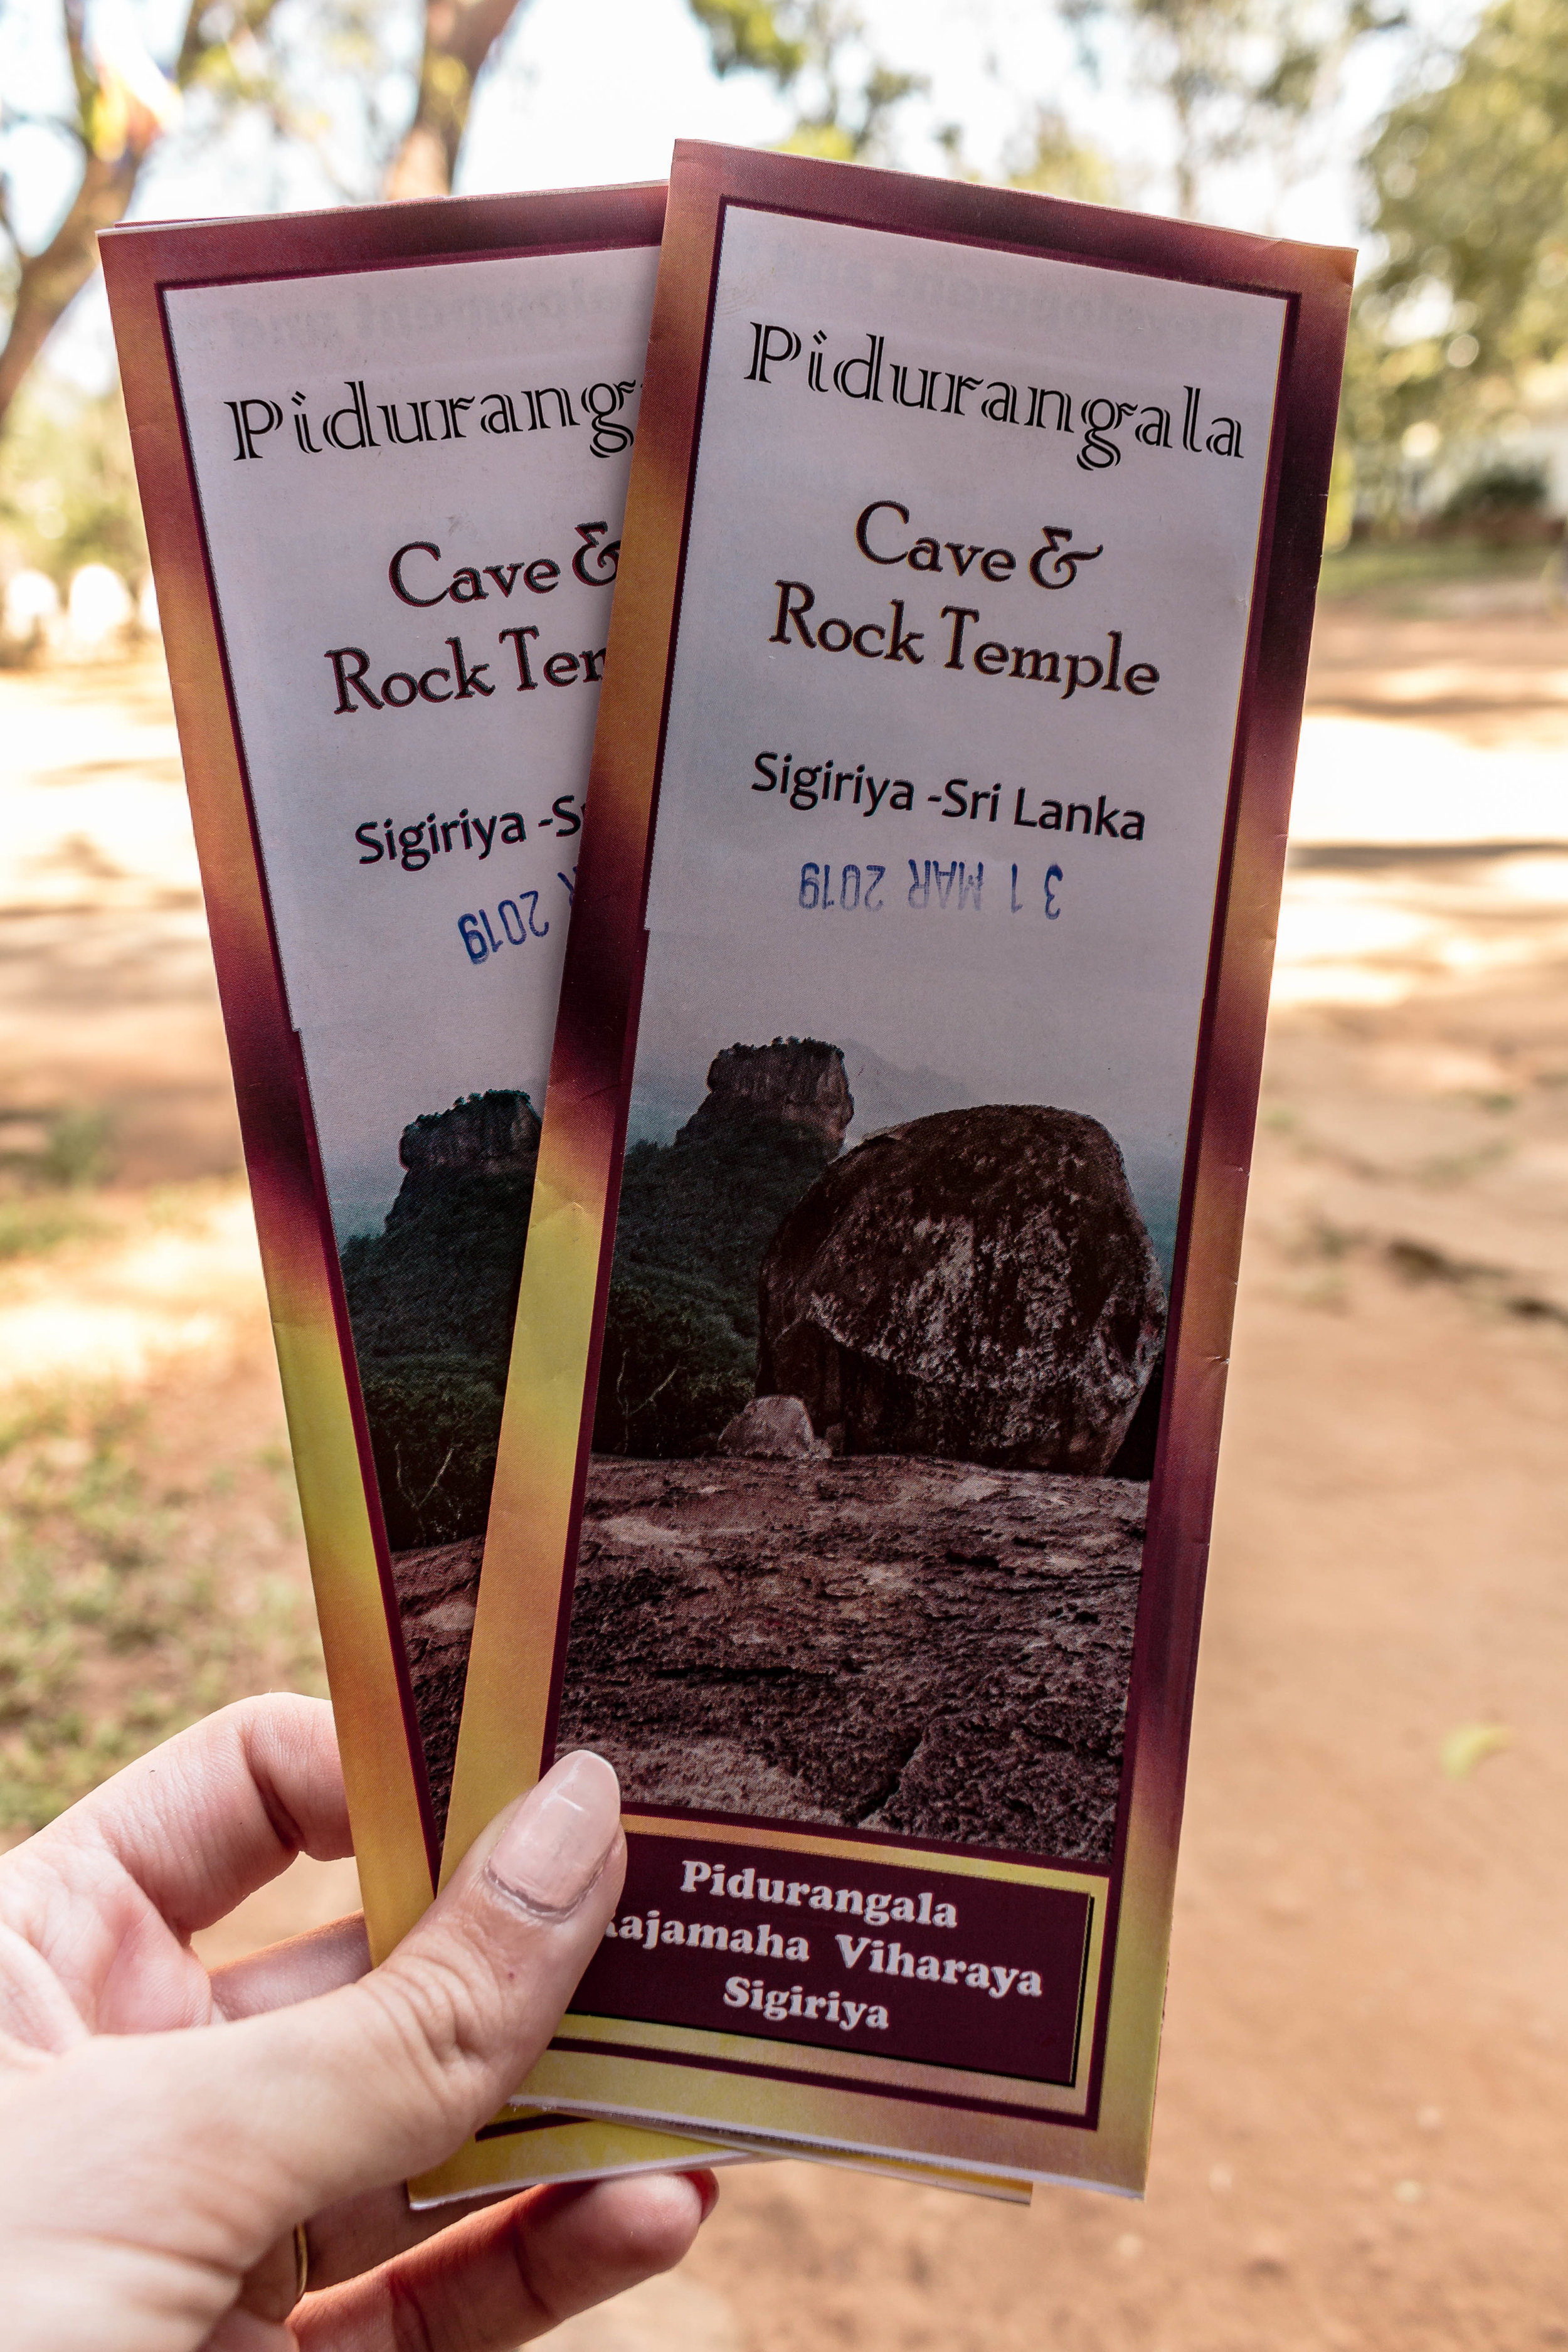 ENTRY TICKETS TO PIDURANGALA